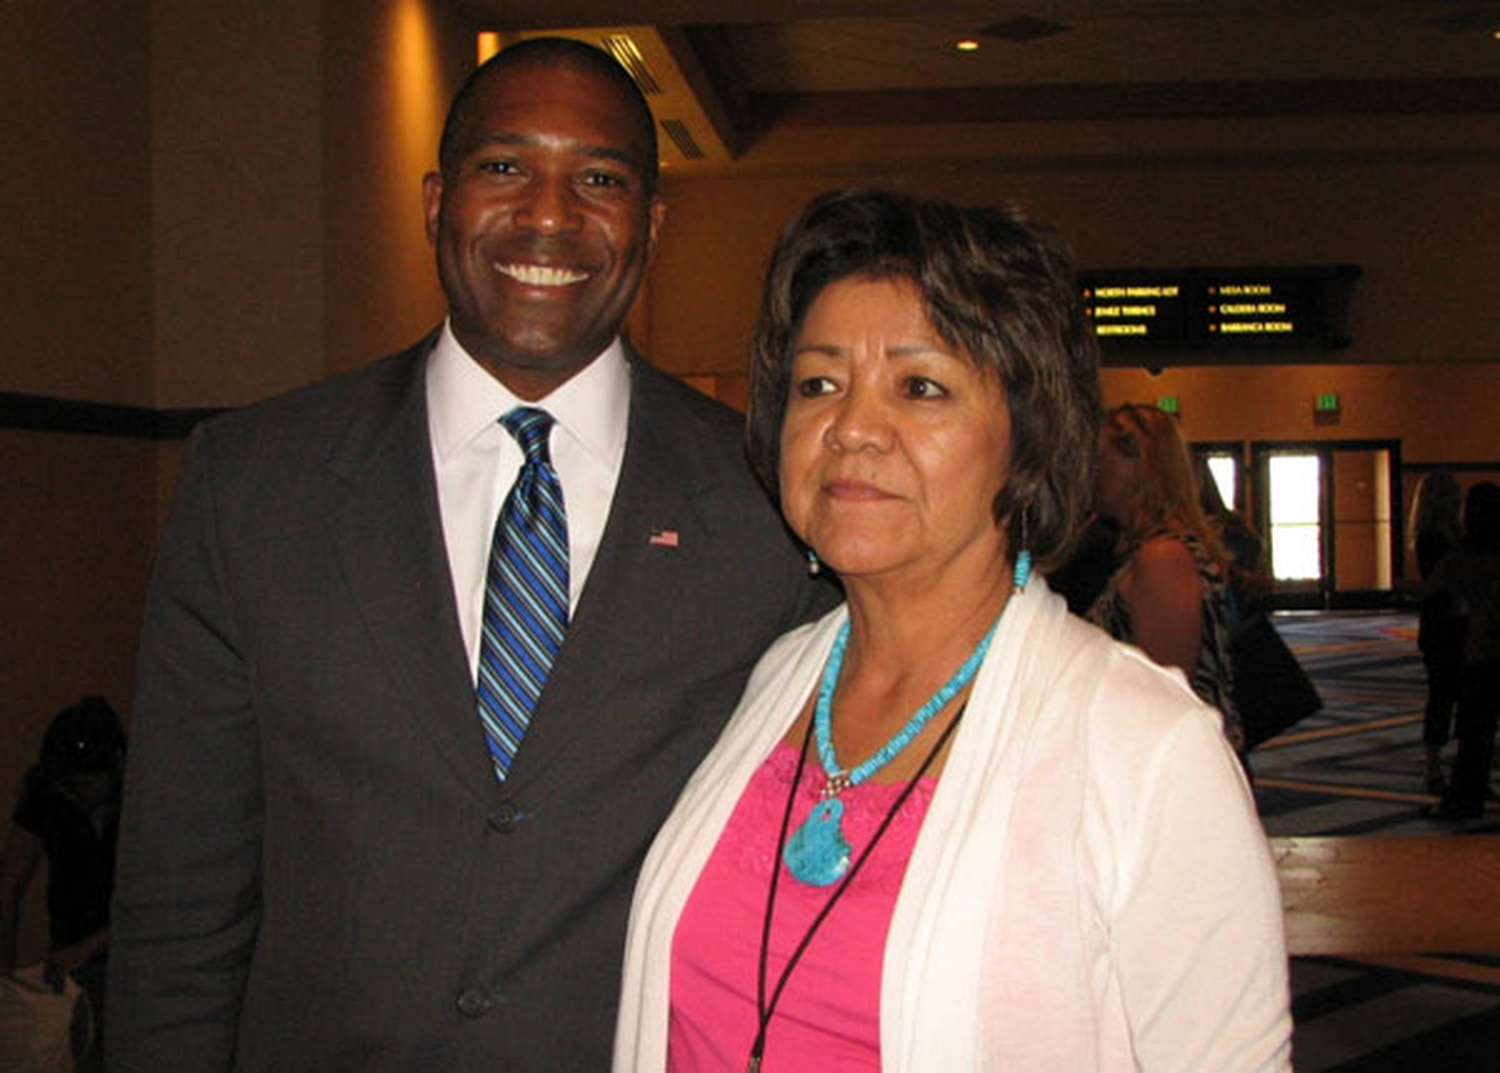 Acting Associate Attorney General Tony West (left) and Navajo Nation Tribal Judge Irene Toledo each discussed efforts to resolve tribal justice system problems at a conference last month in Pojoaque.